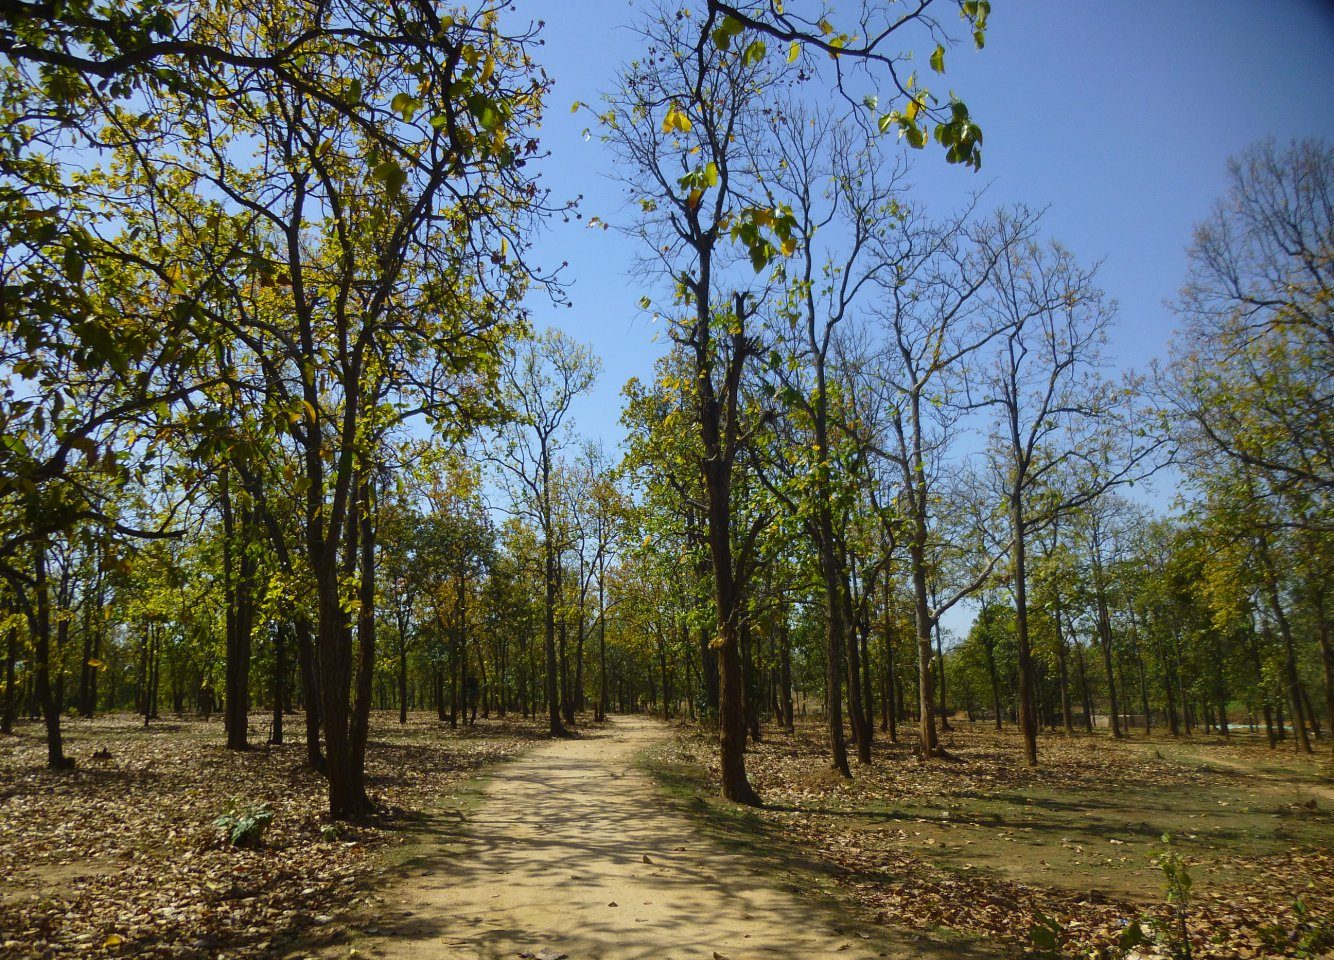 Top Spot In Mccluskieganj-McCluskieganj Forests